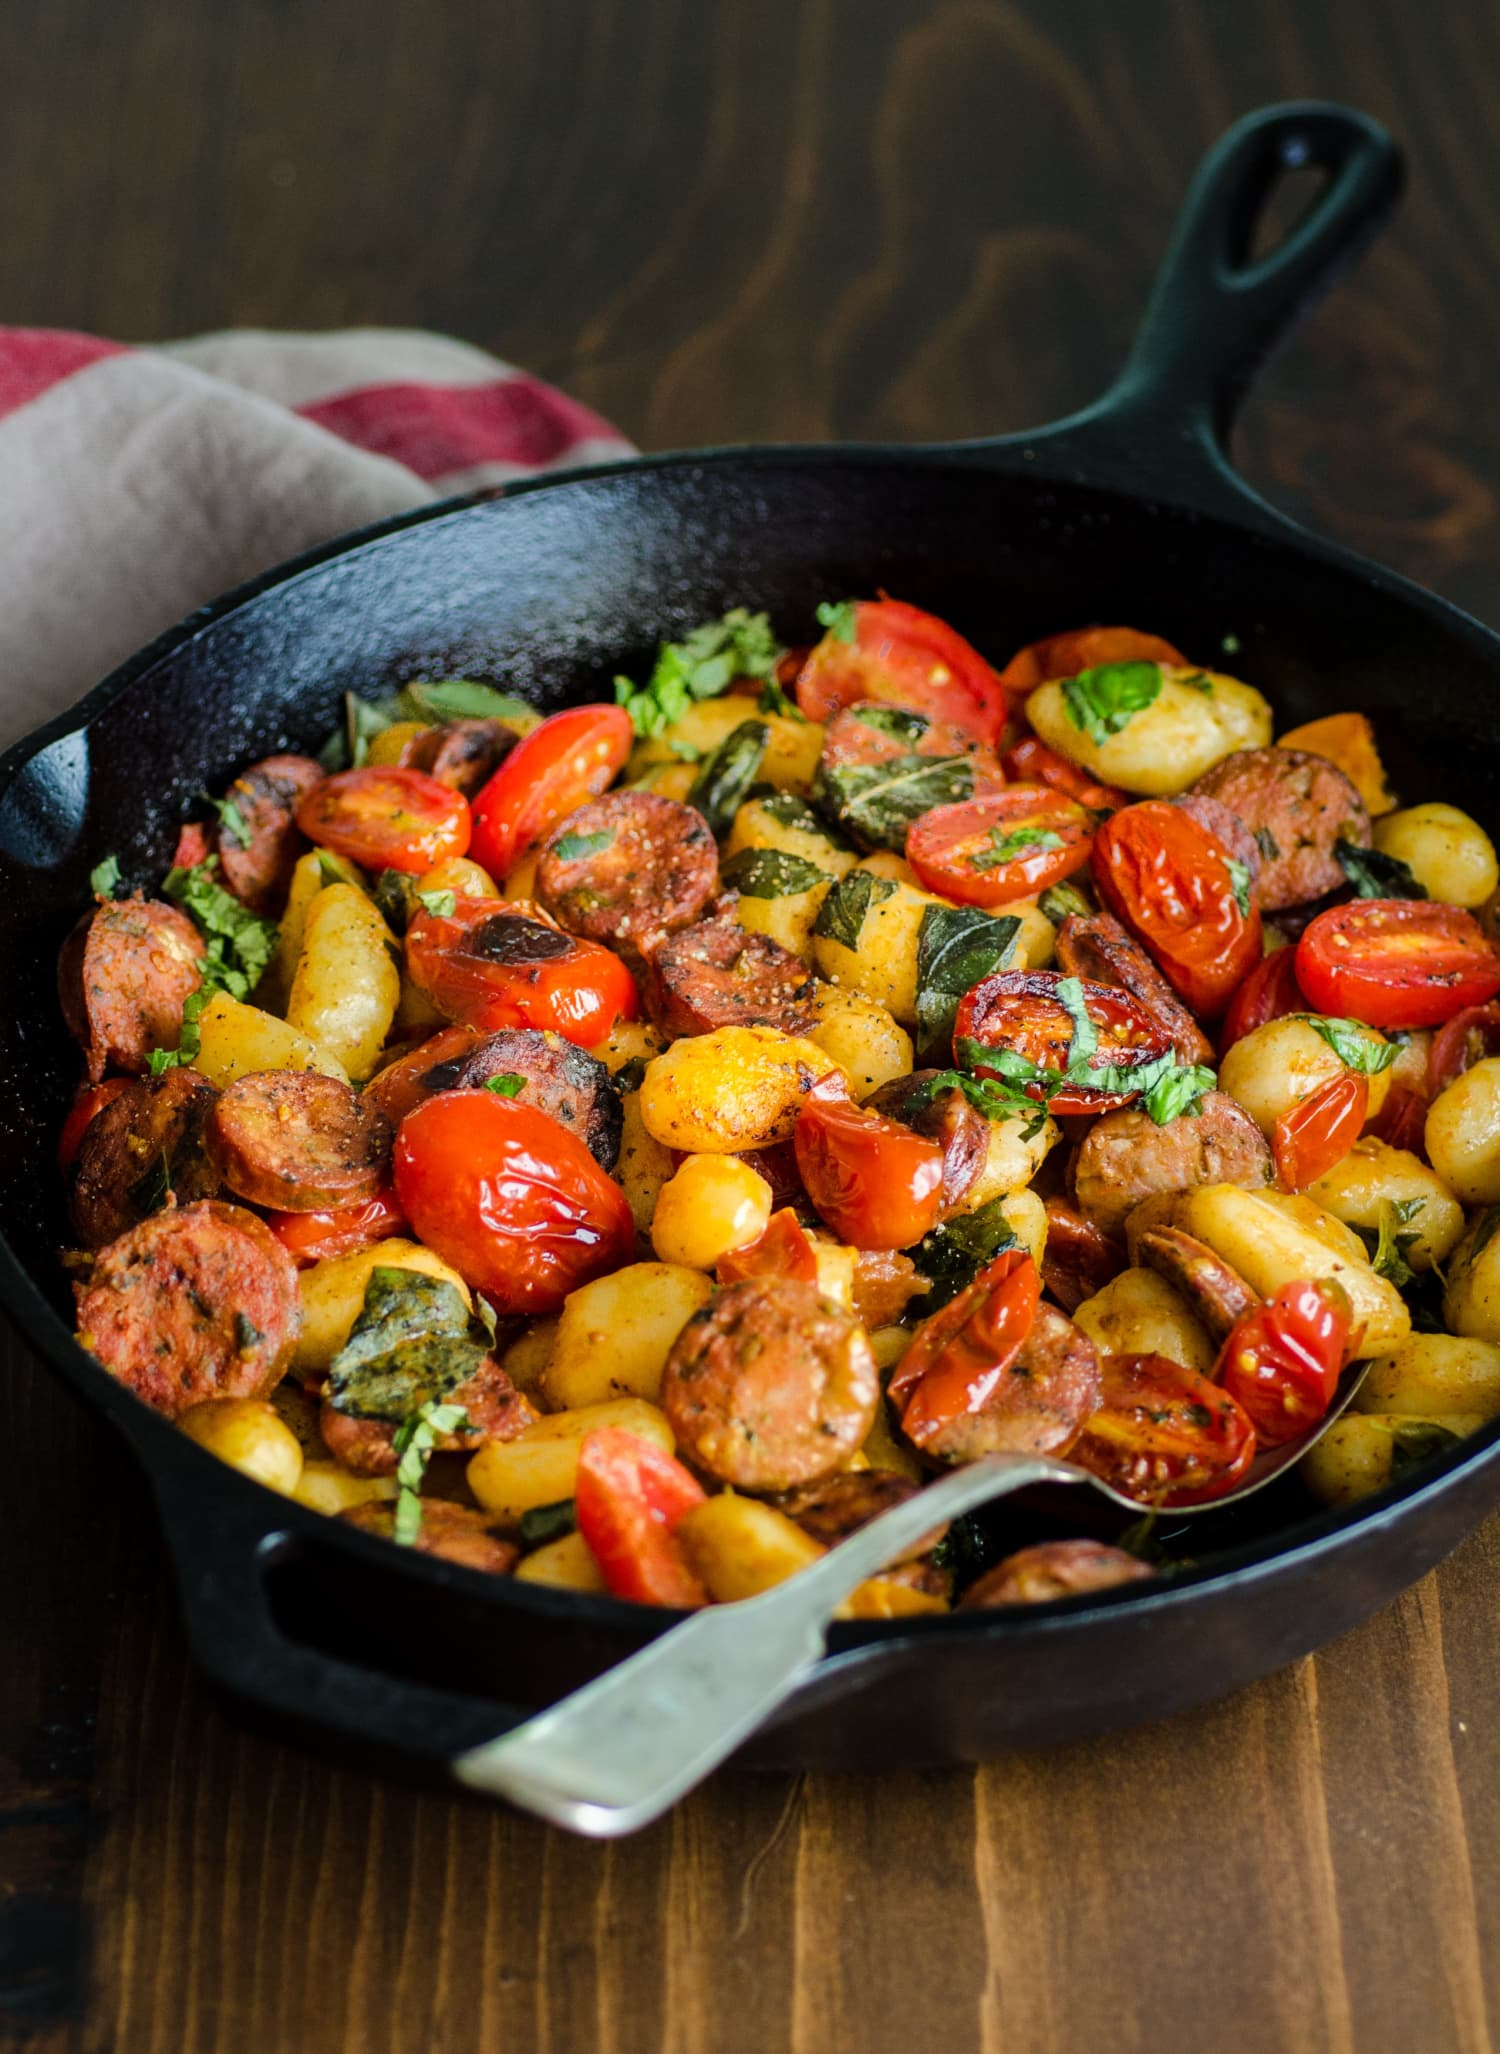 Recipe: Gnocchi Skillet with Chicken Sausage & Tomatoes